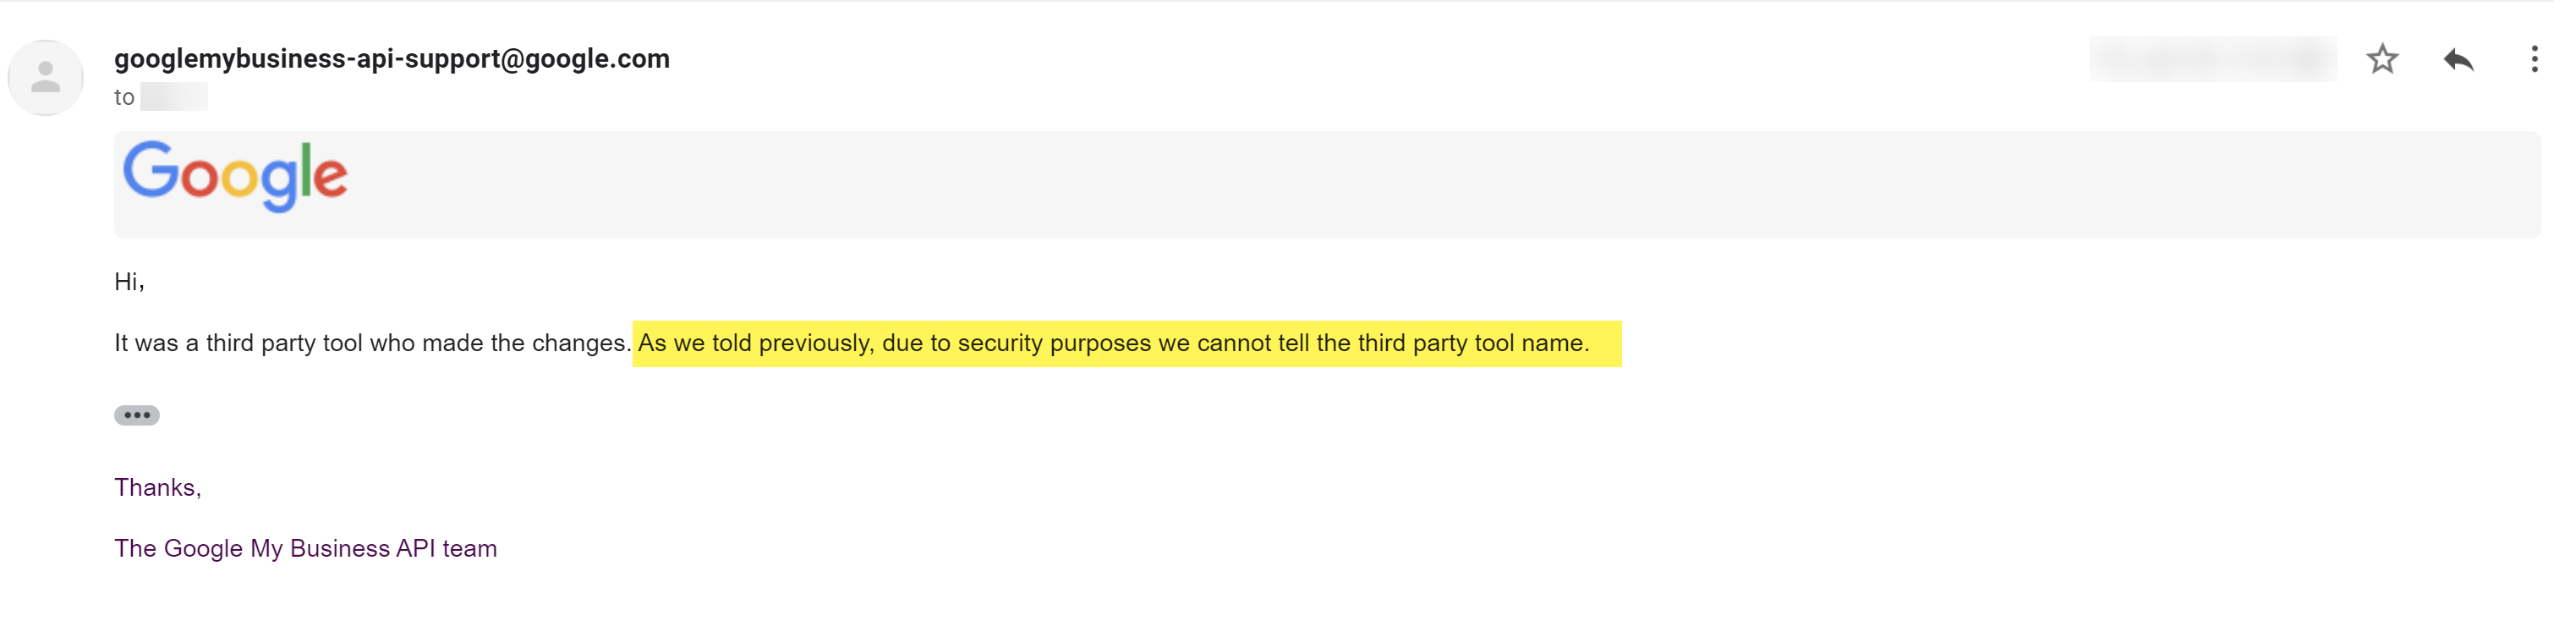 GMB support will not tell you which third-party tool caused the issue.